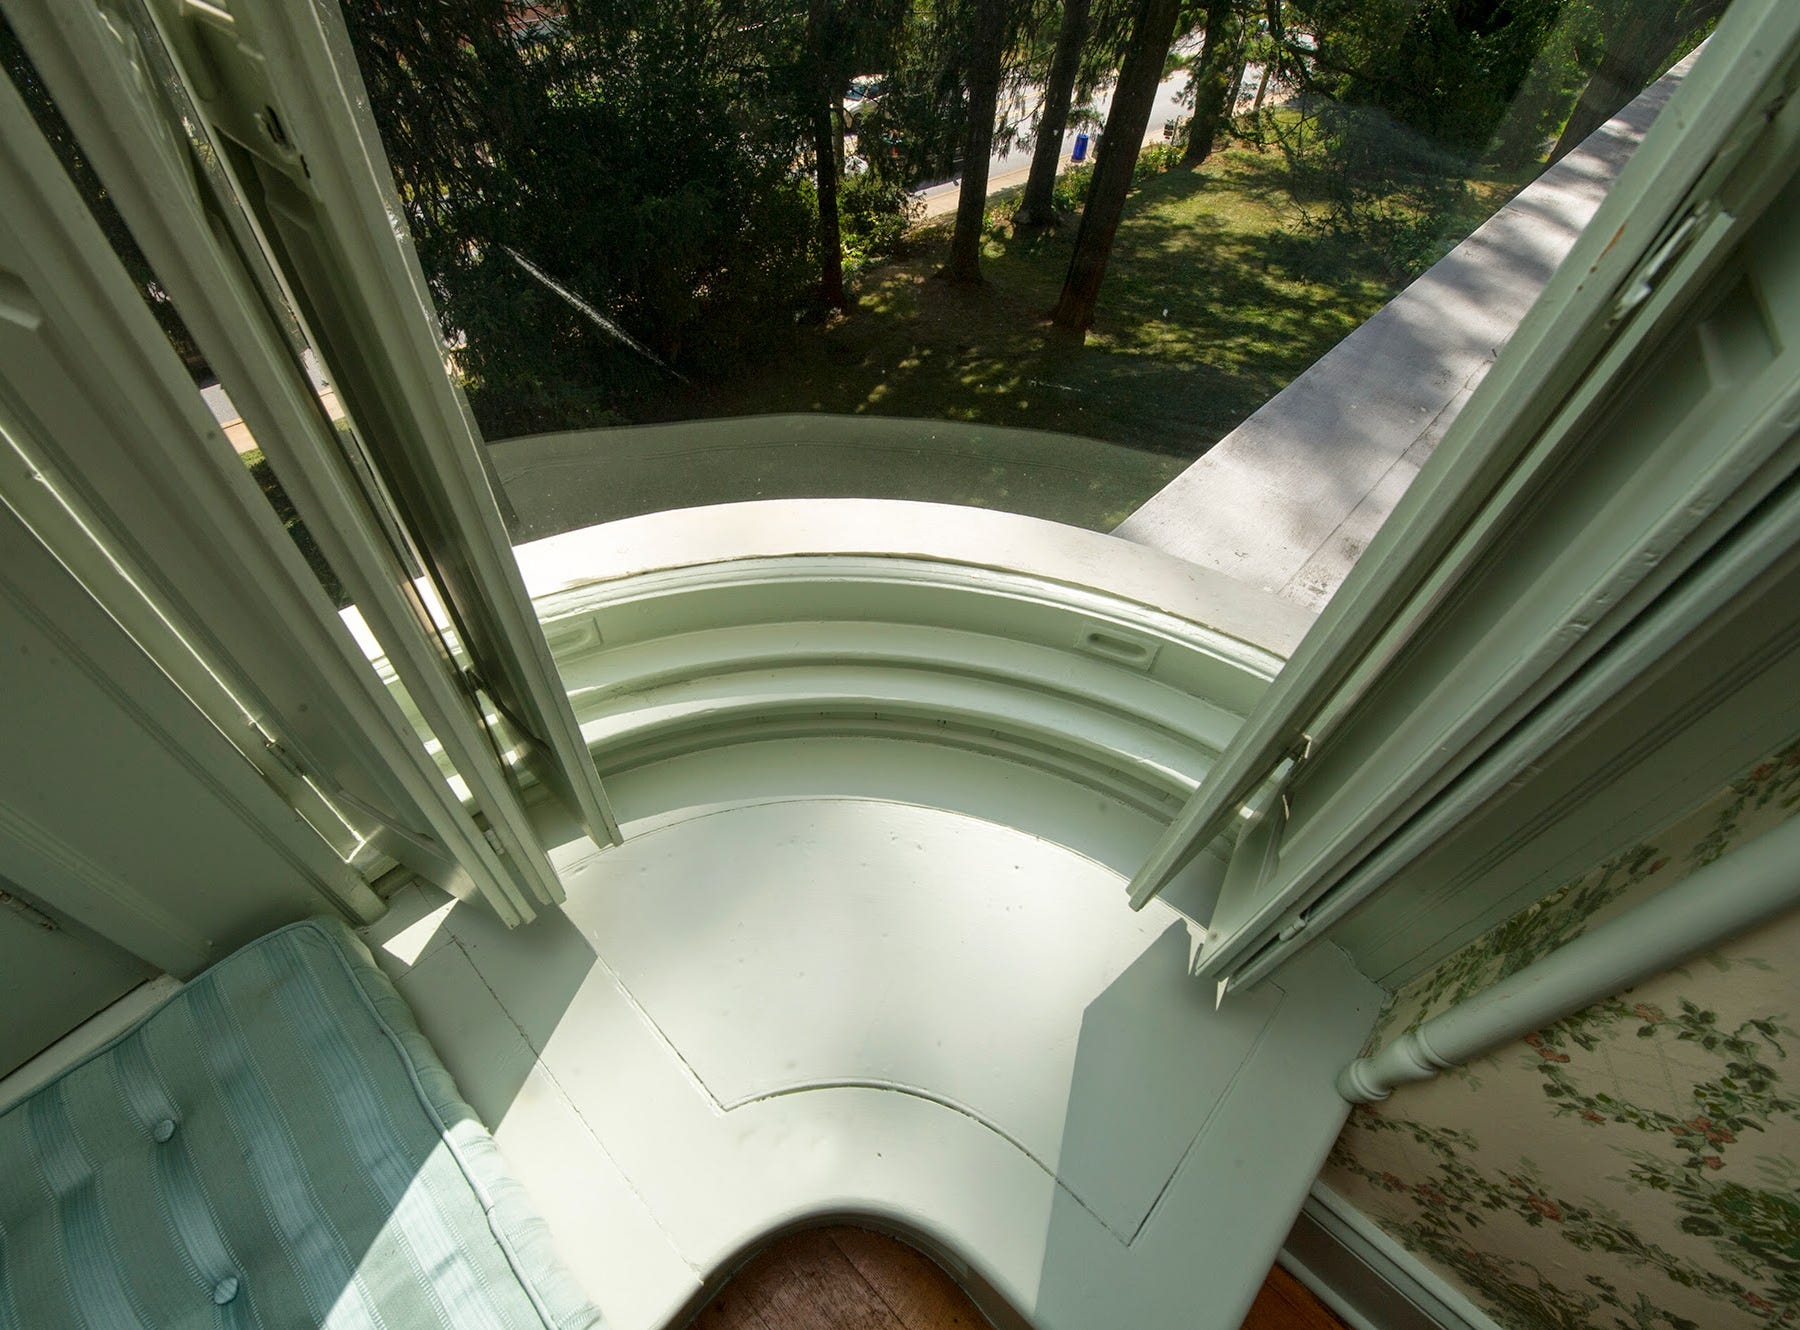 Curved glass wraps around a bay window on the second floor of the Emig Mansion.